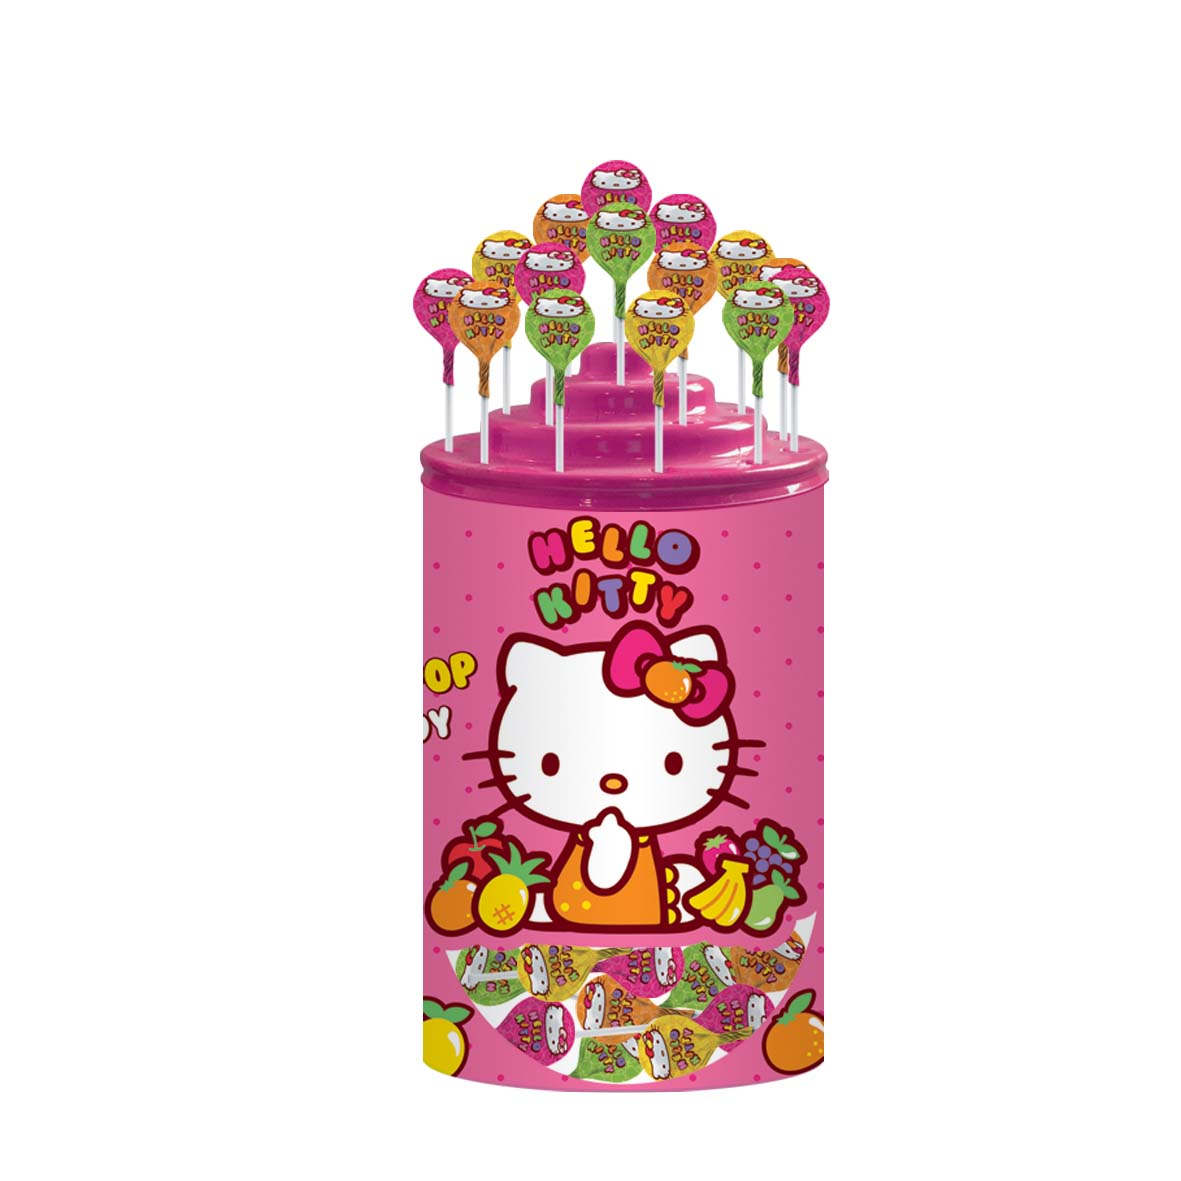 BOMBOANE HELLO KITTY, 16 g